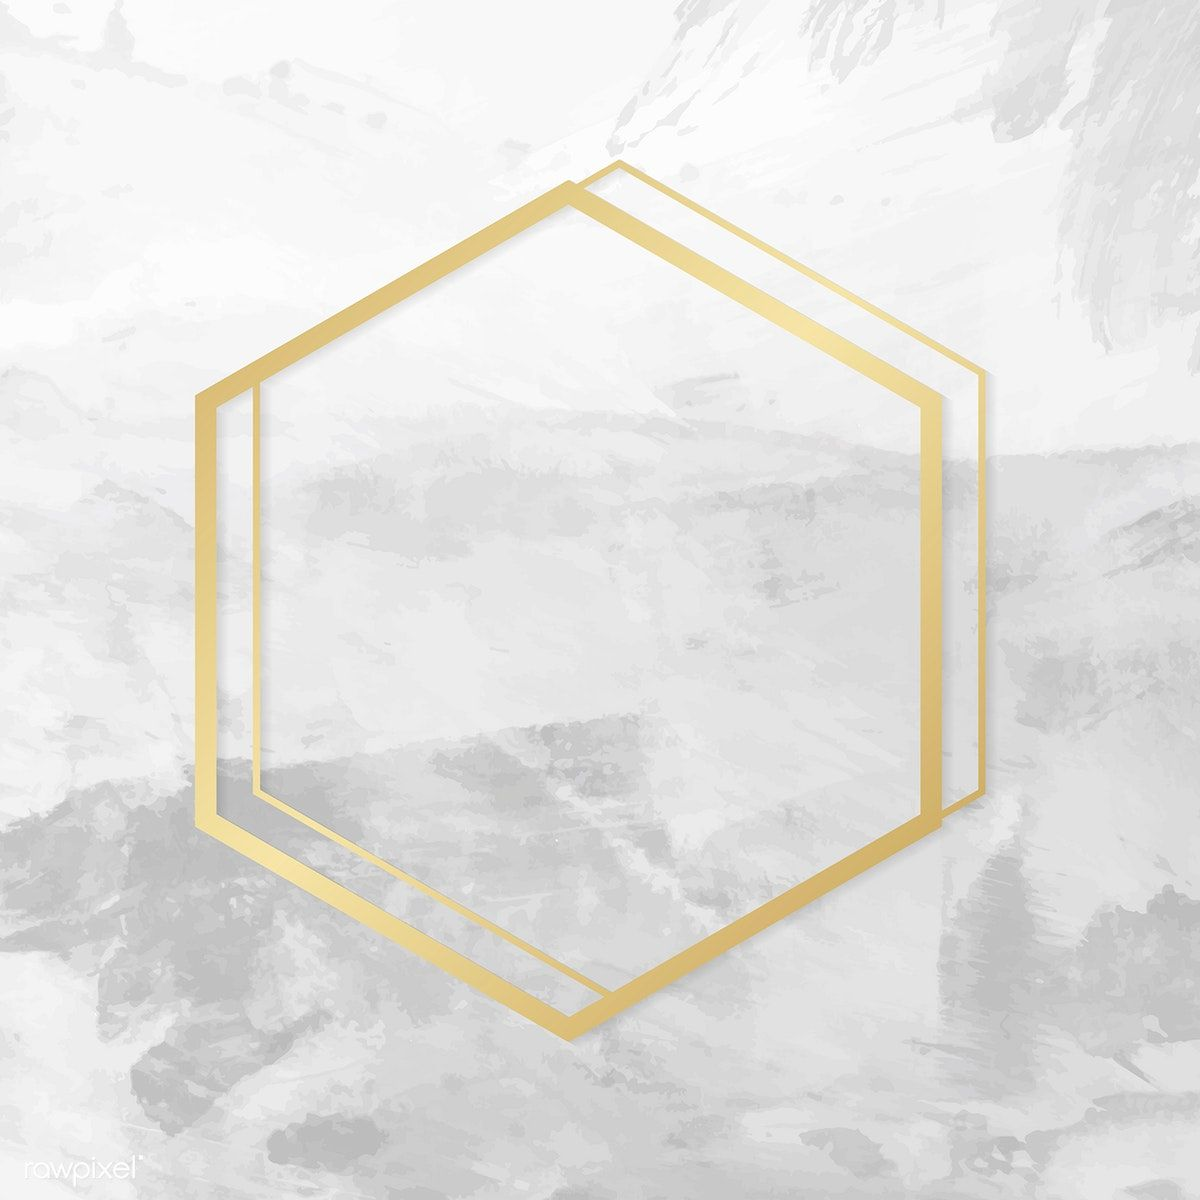 banner freeuse stock Gold hexagon frame on a gray concrete textured background